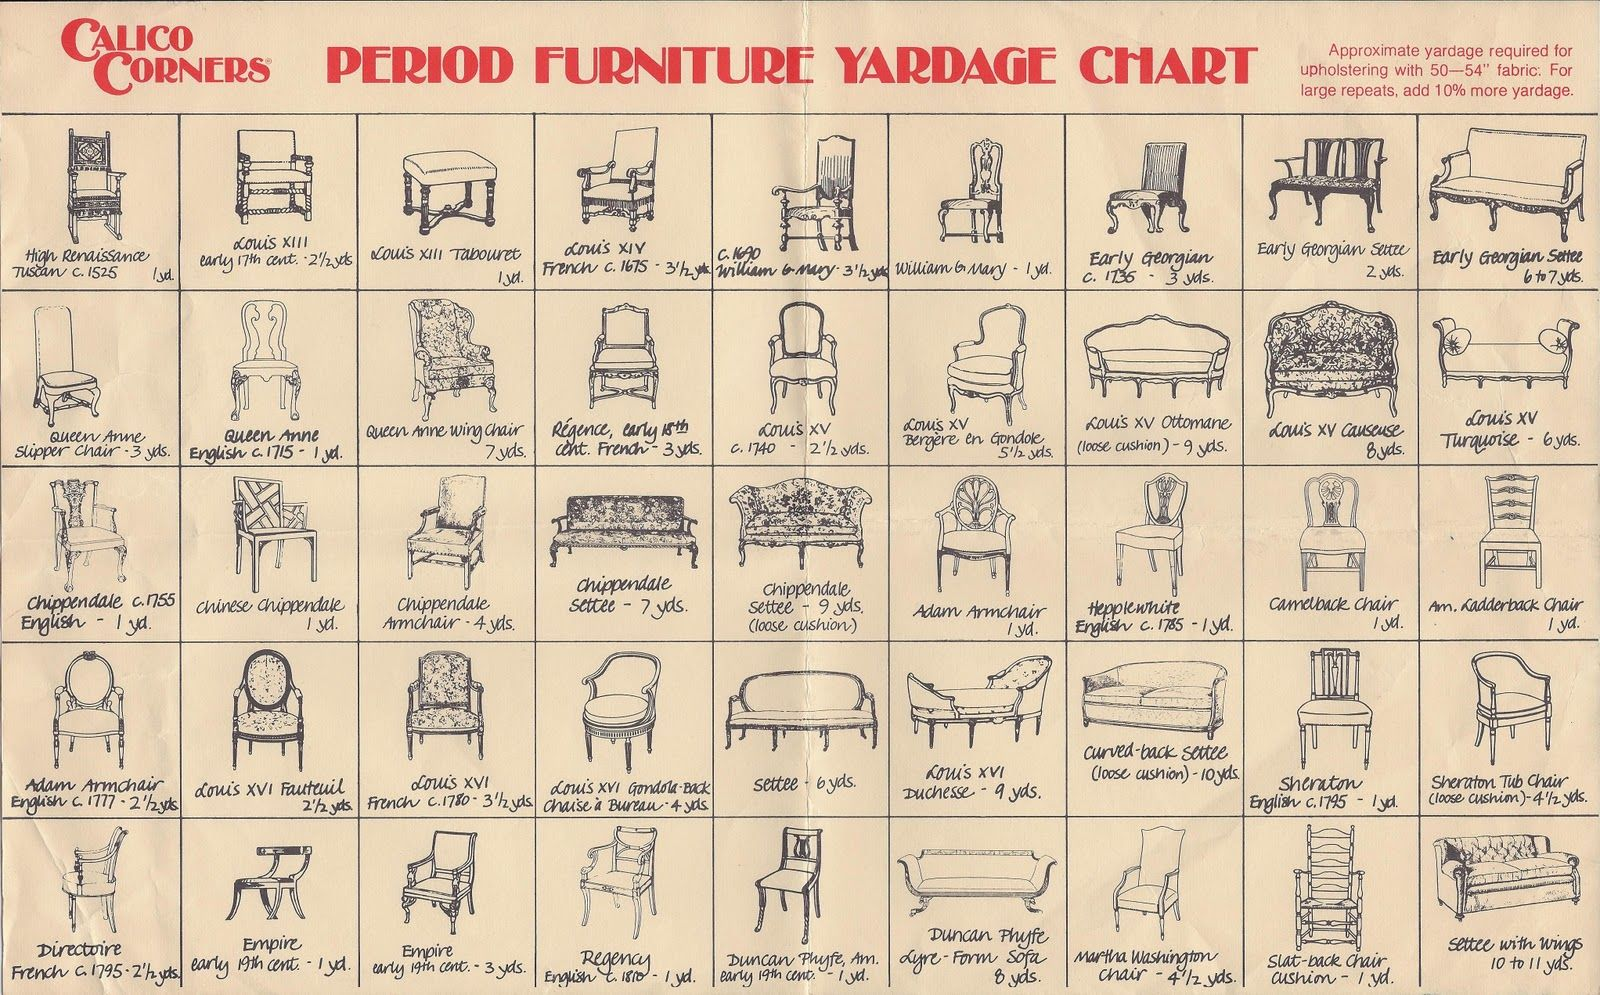 Dining Chair Styles Chart Plush Office Furniture Period Pictures Yardage